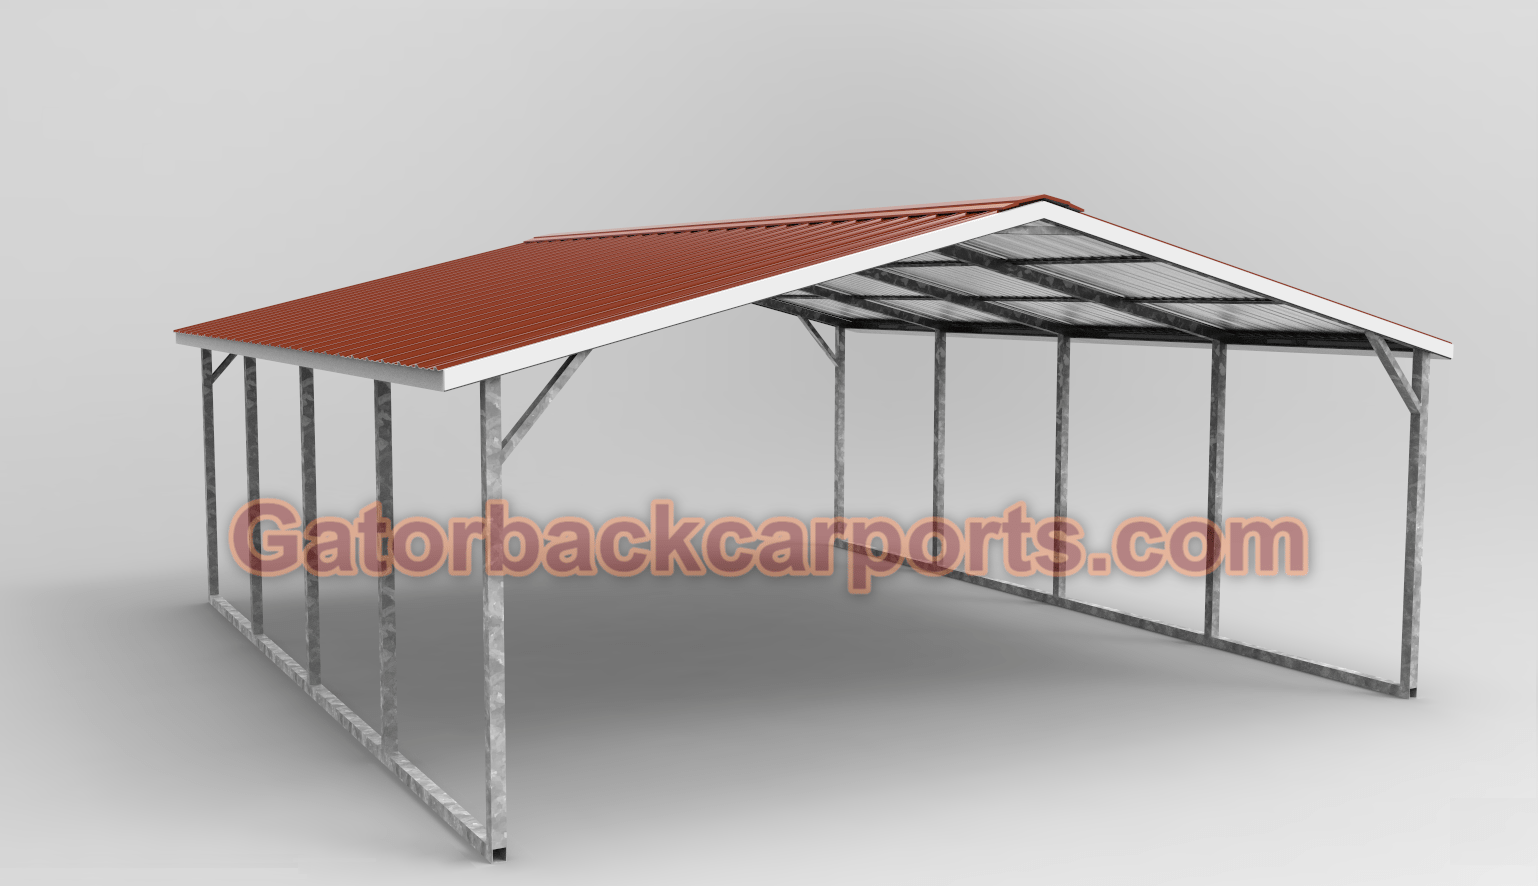 Vertical Roof Metal Carport : The difference between horizontal roof and vertical